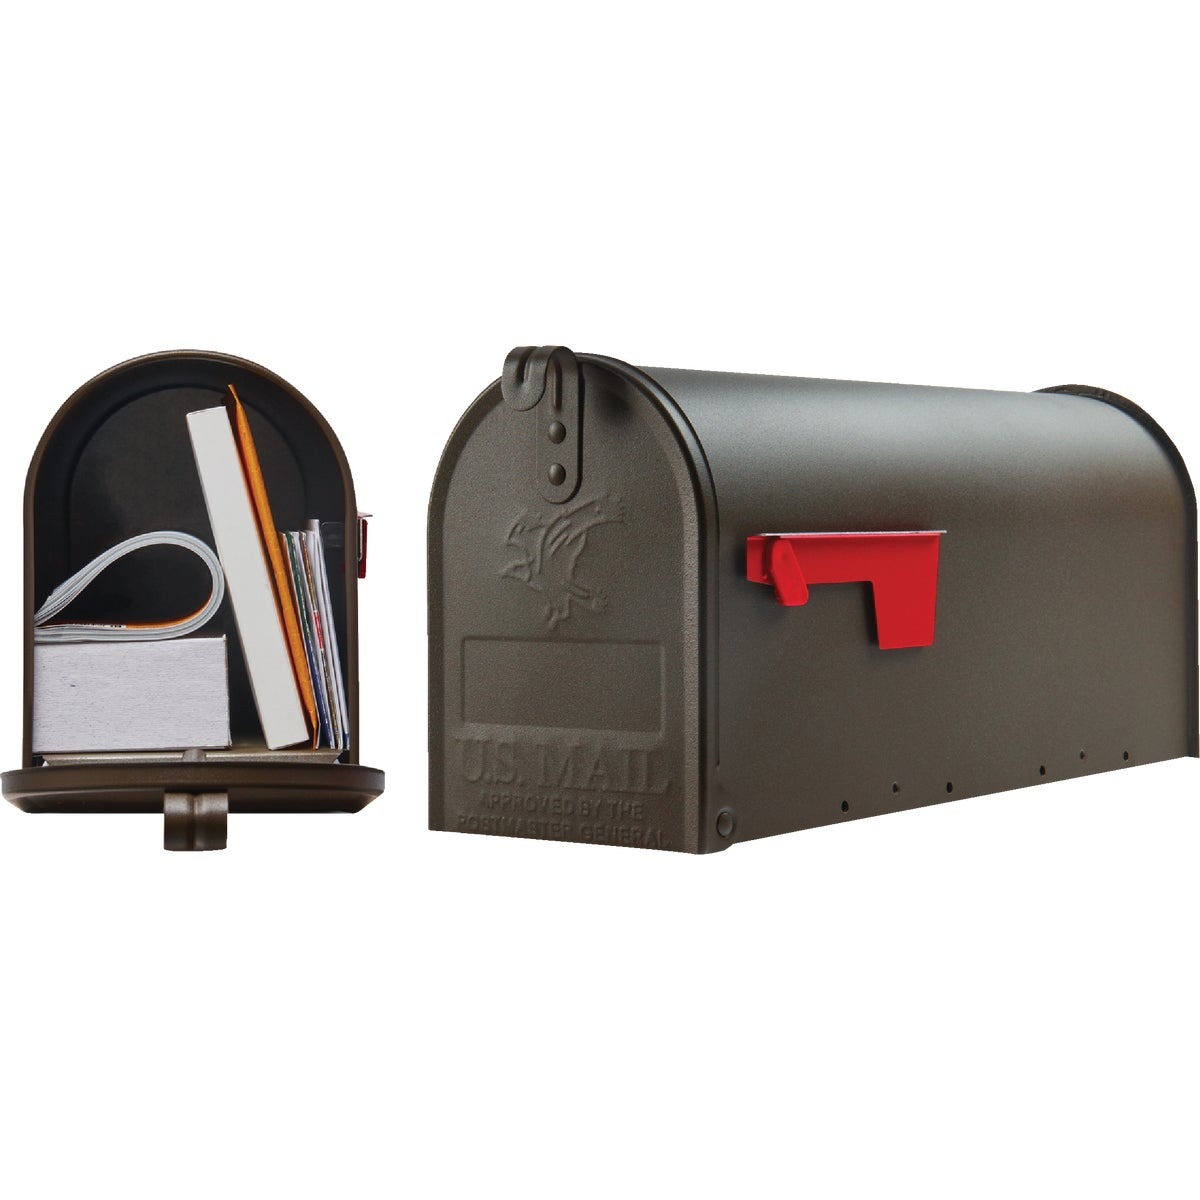 BRONZE T1 MAILBOX - E11BZ#T1 by Solar Group